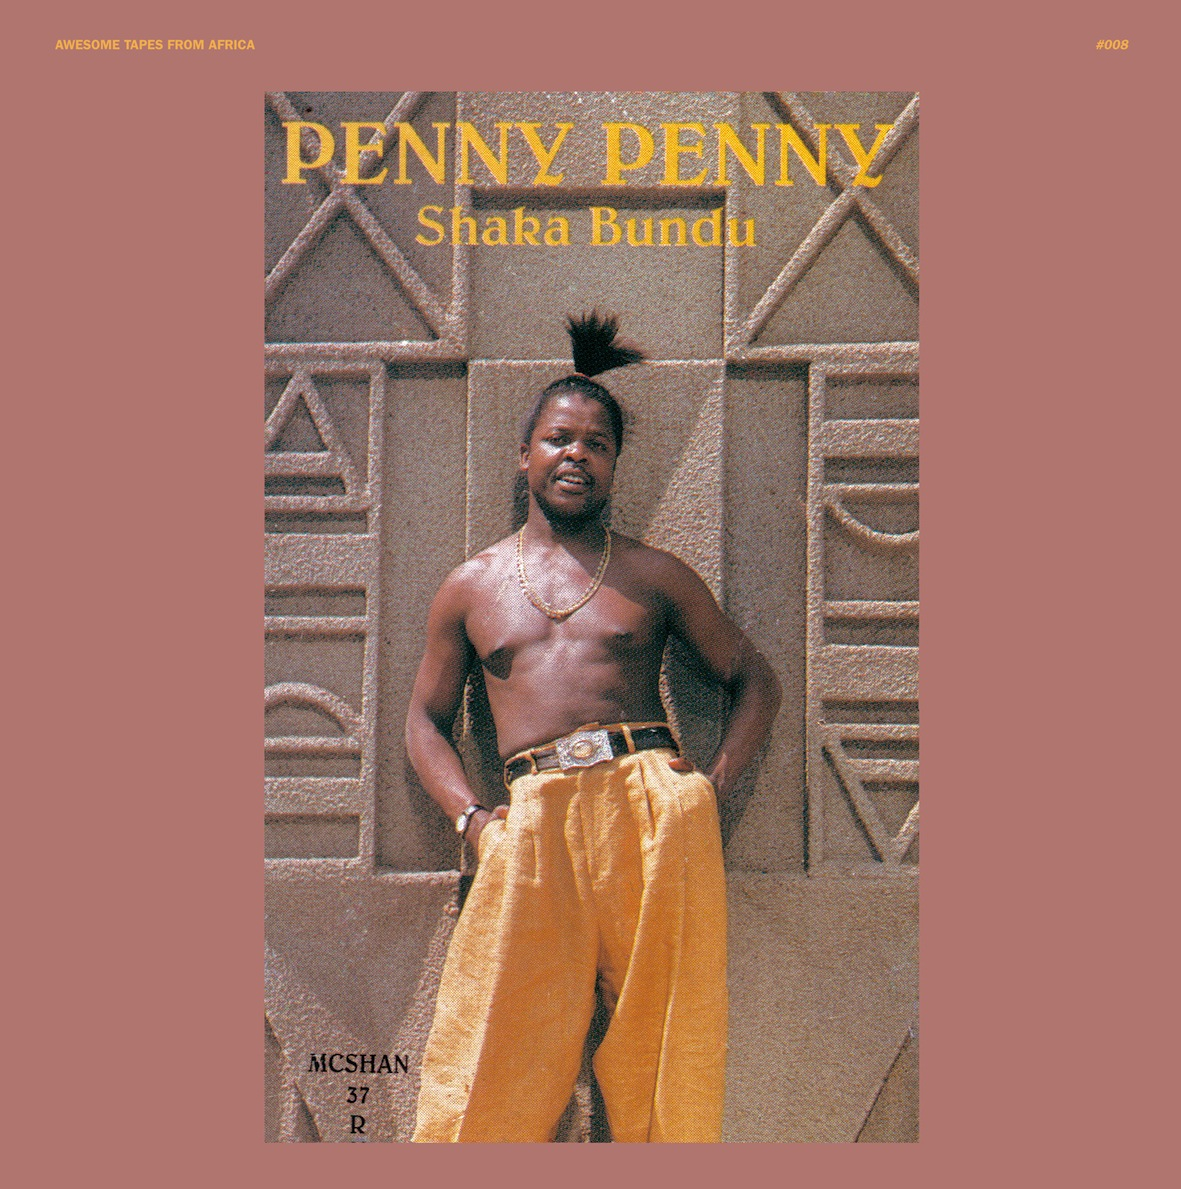 """Penny Penny's mid-90s hymn to the end of apartheid """"Shaka Bundu"""" gets first official Western release on Awesome Tapes From Africa."""